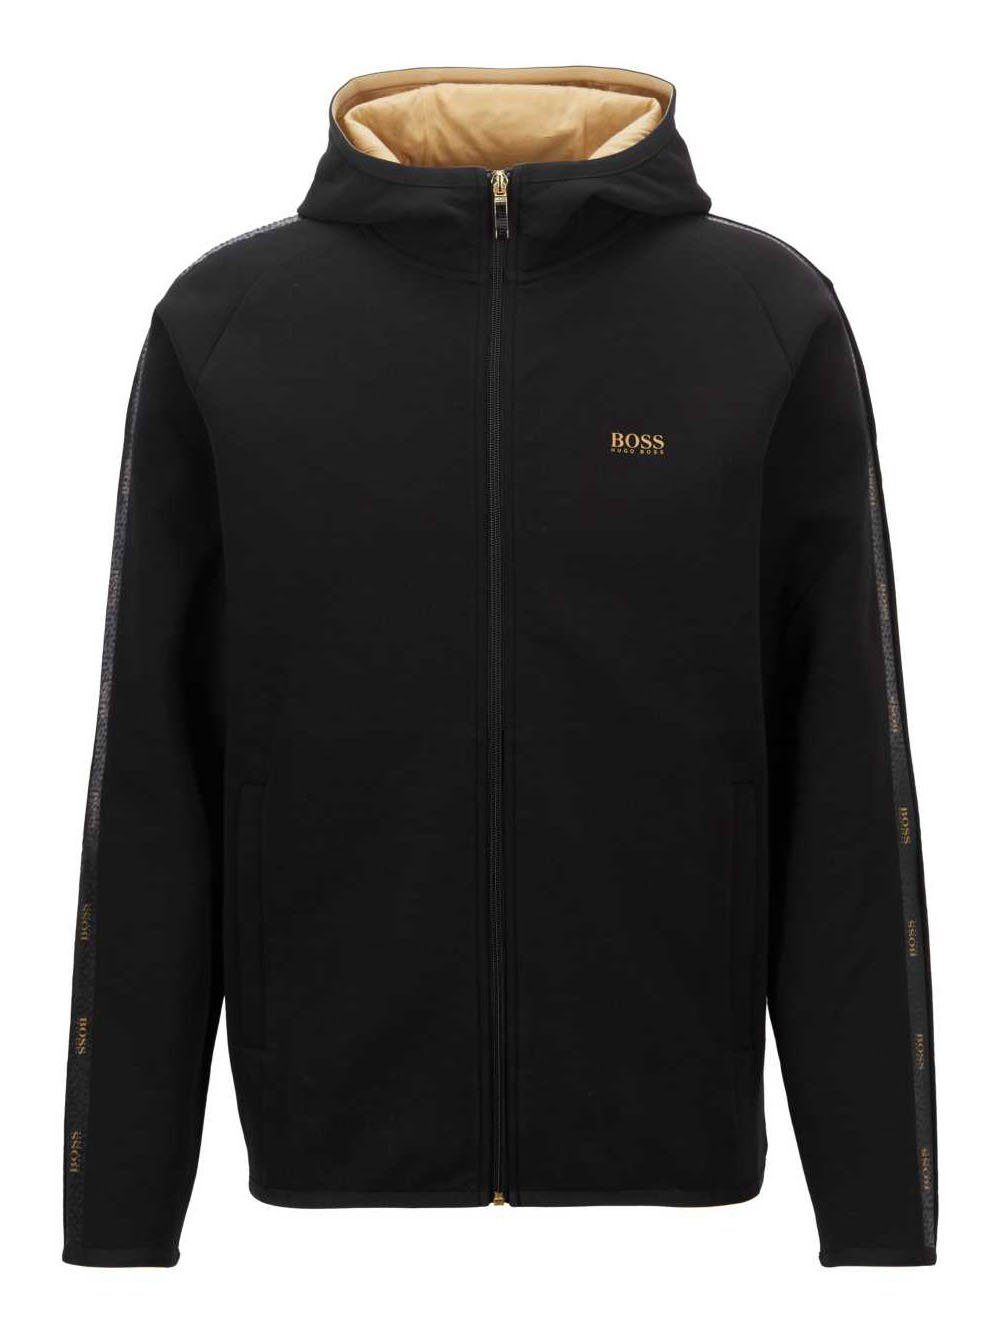 BOSS Interlock fabric hooded sweatshirt Black